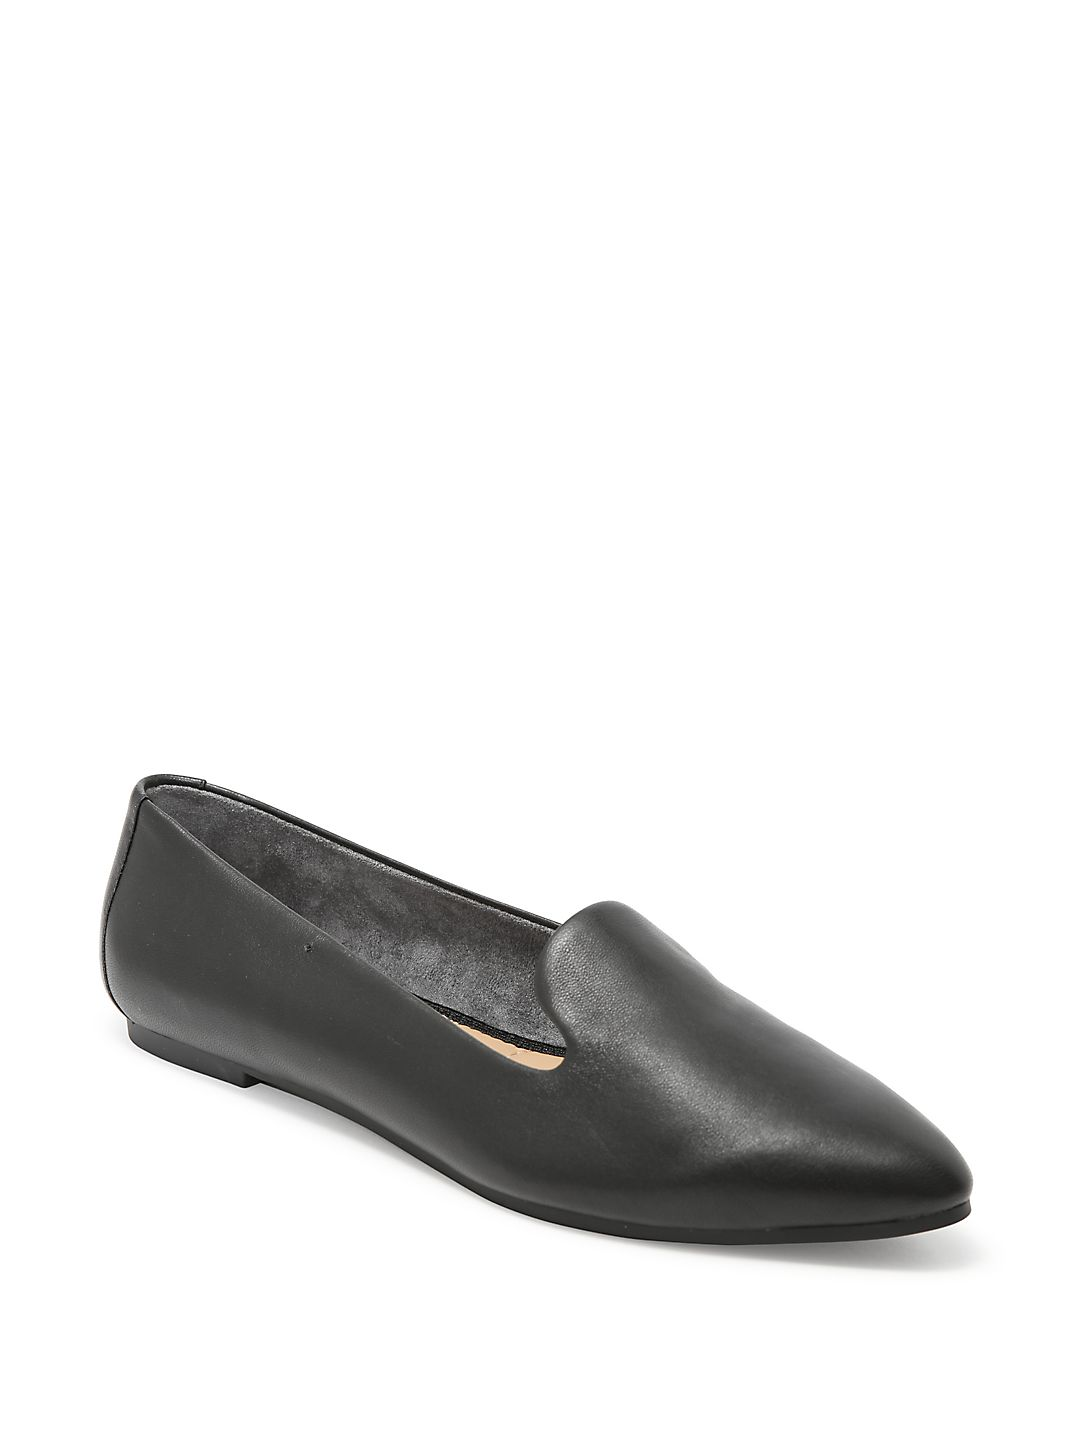 Adel Leather Loafers